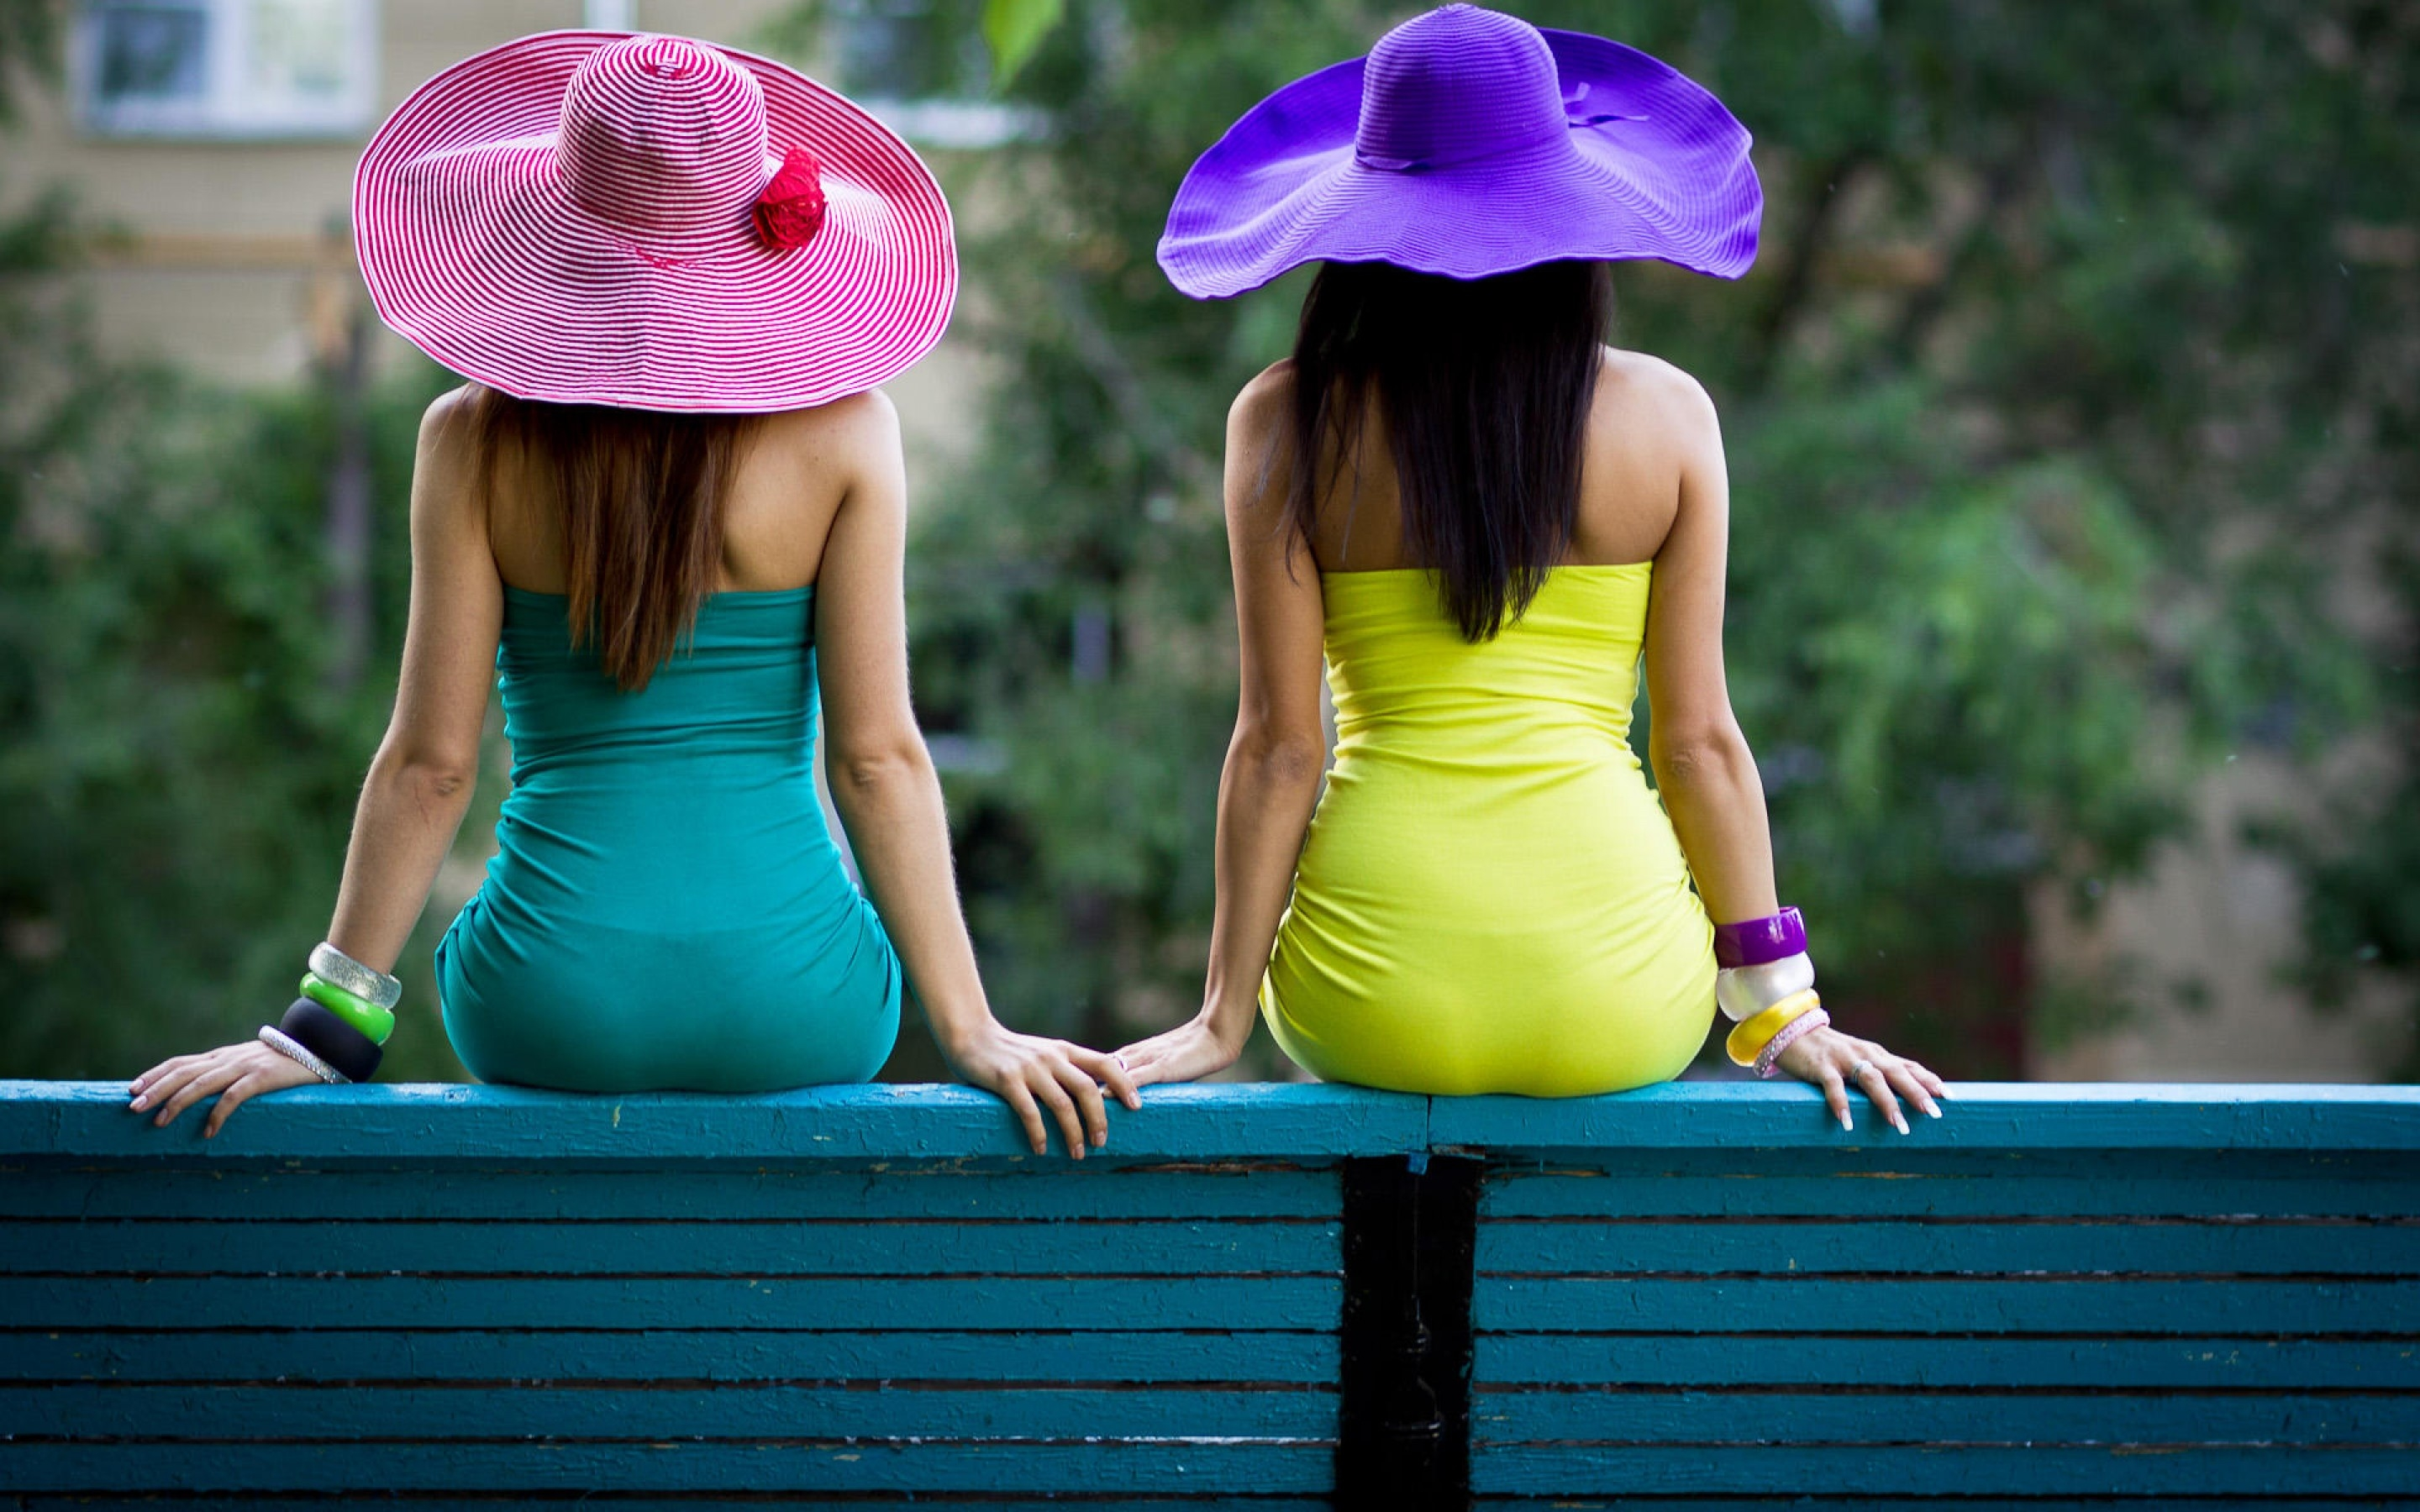 girls with sun hats hd wallpaper hd latest wallpapers